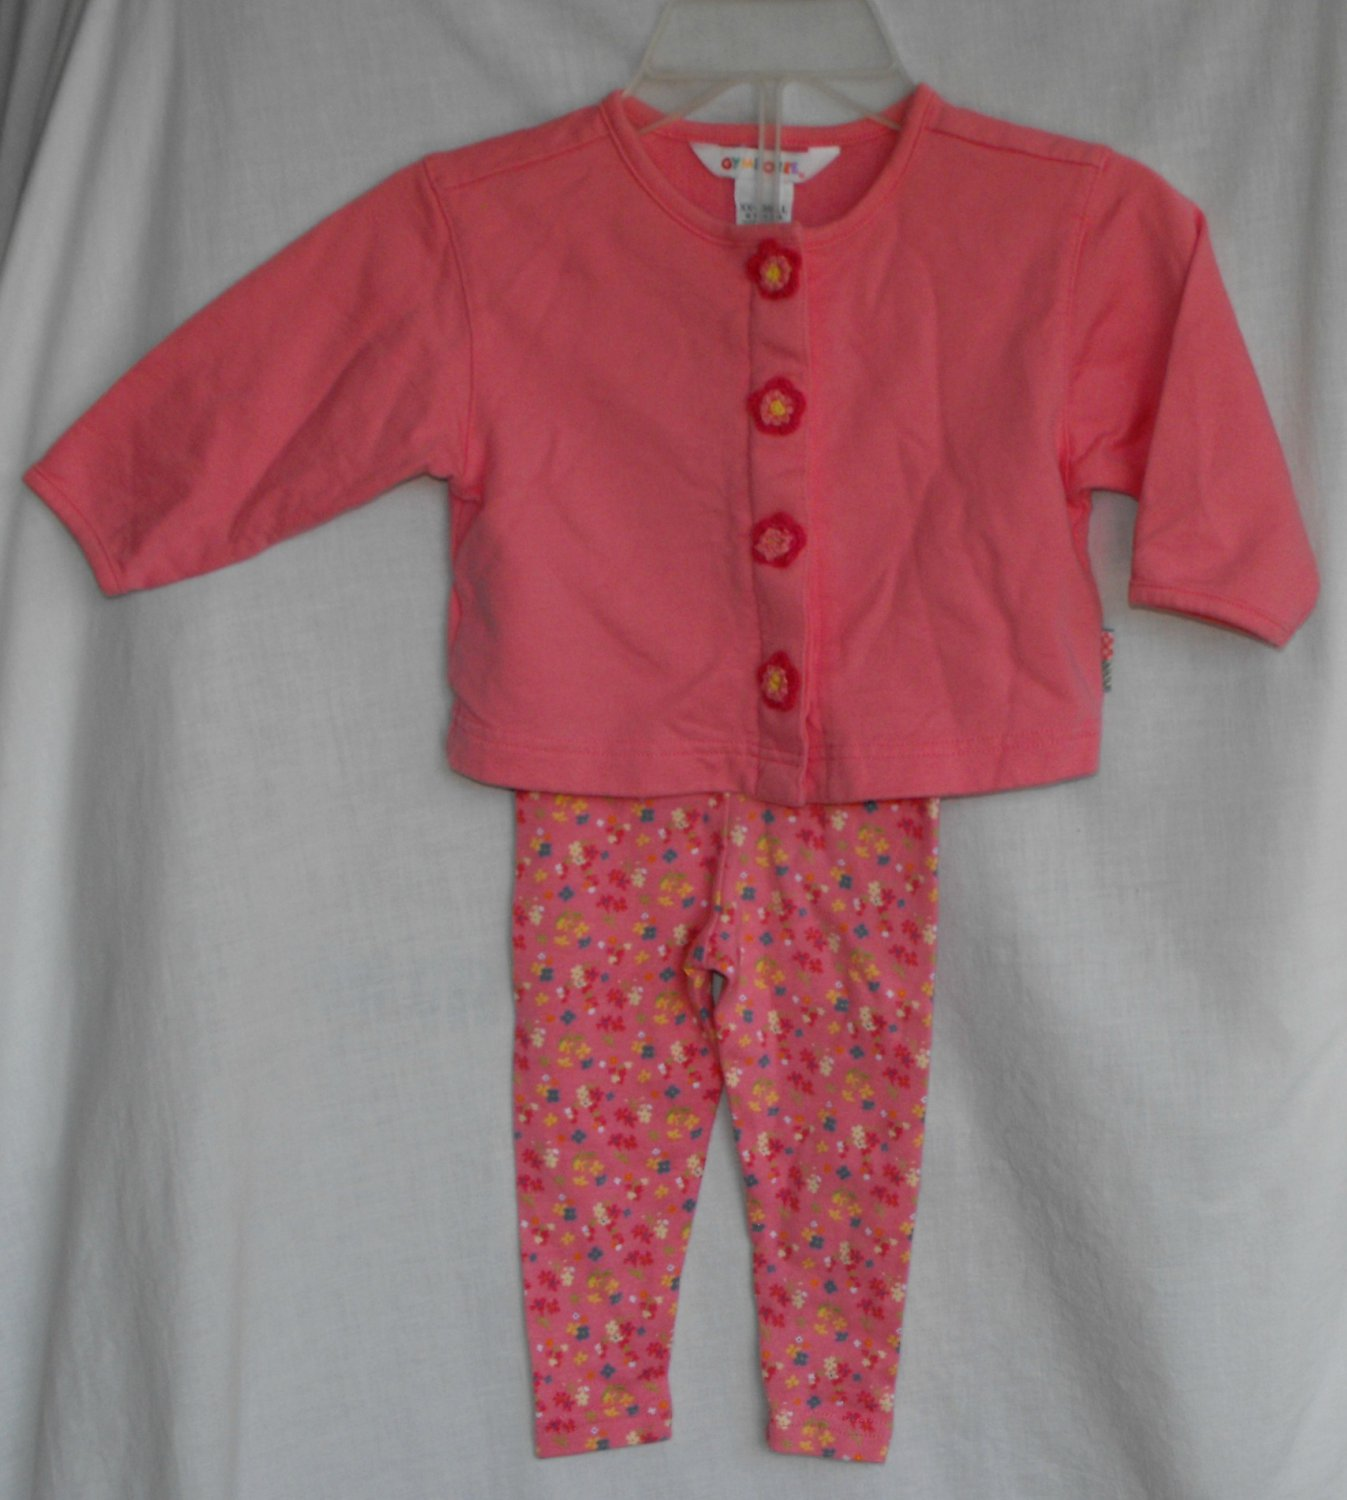 Gymboree Cardigan and Leggings Blooms Baby Girl Outfit 12 18 Months